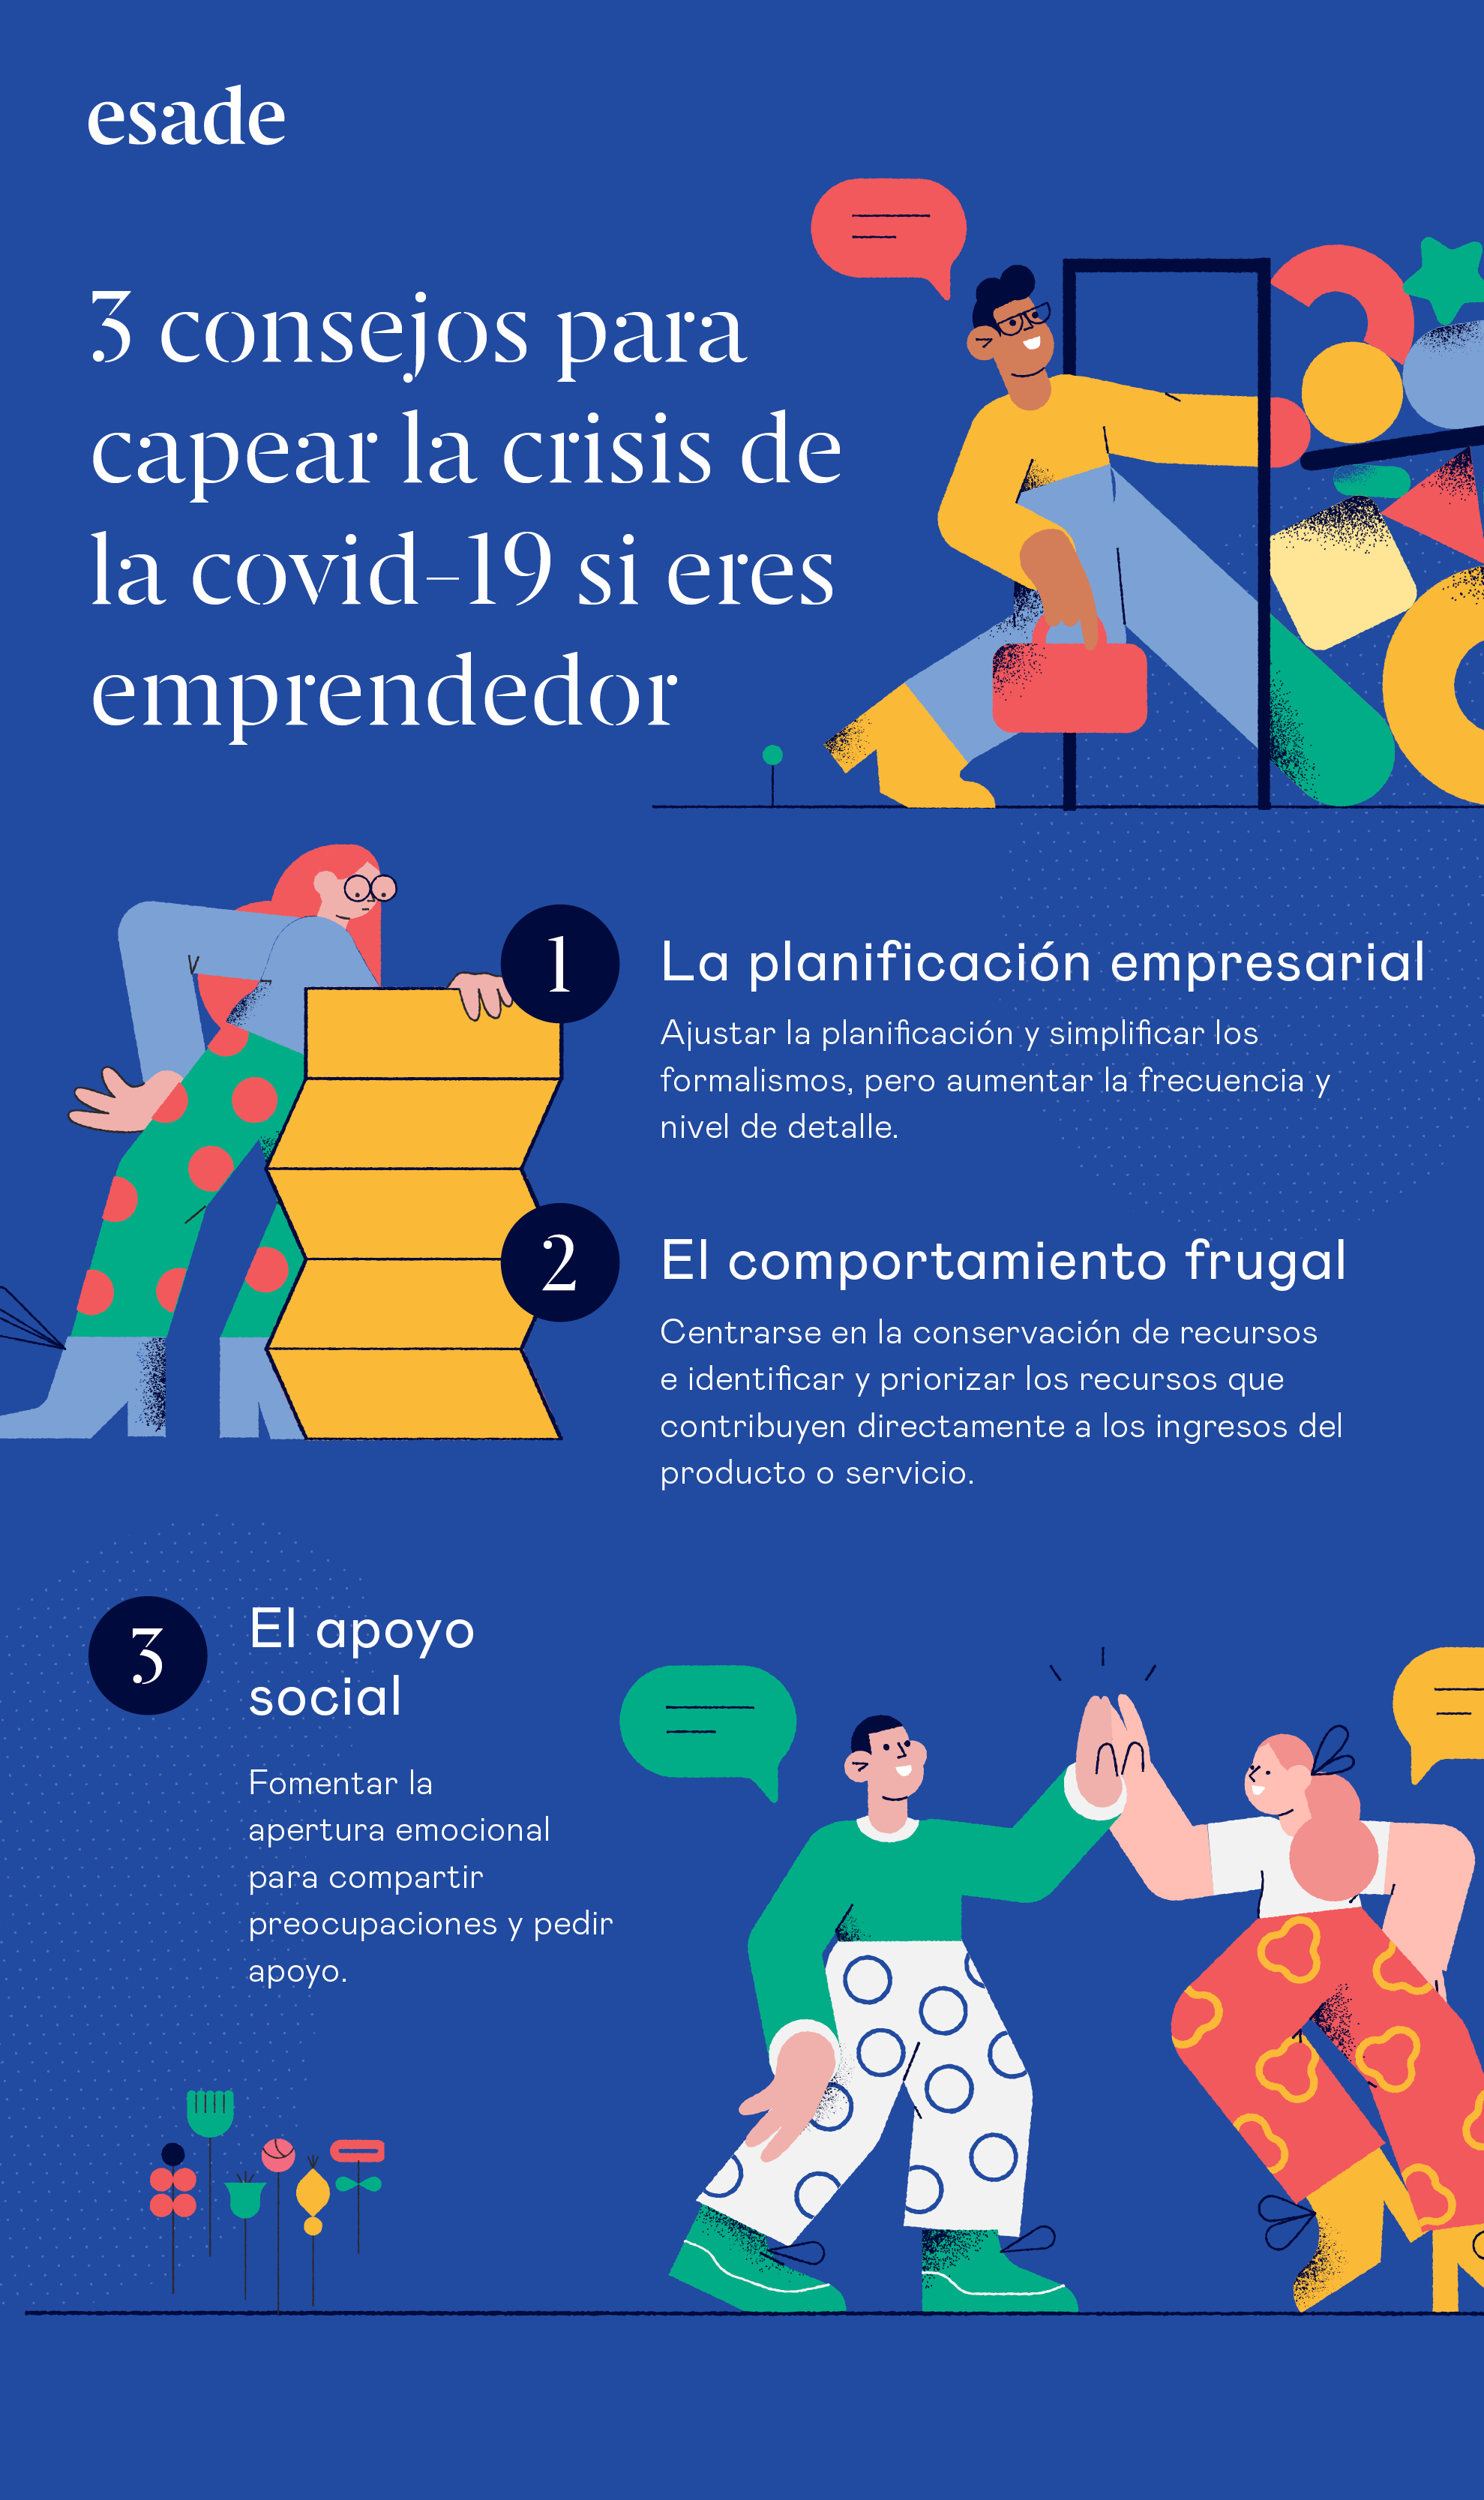 Covid-19 emprendedores